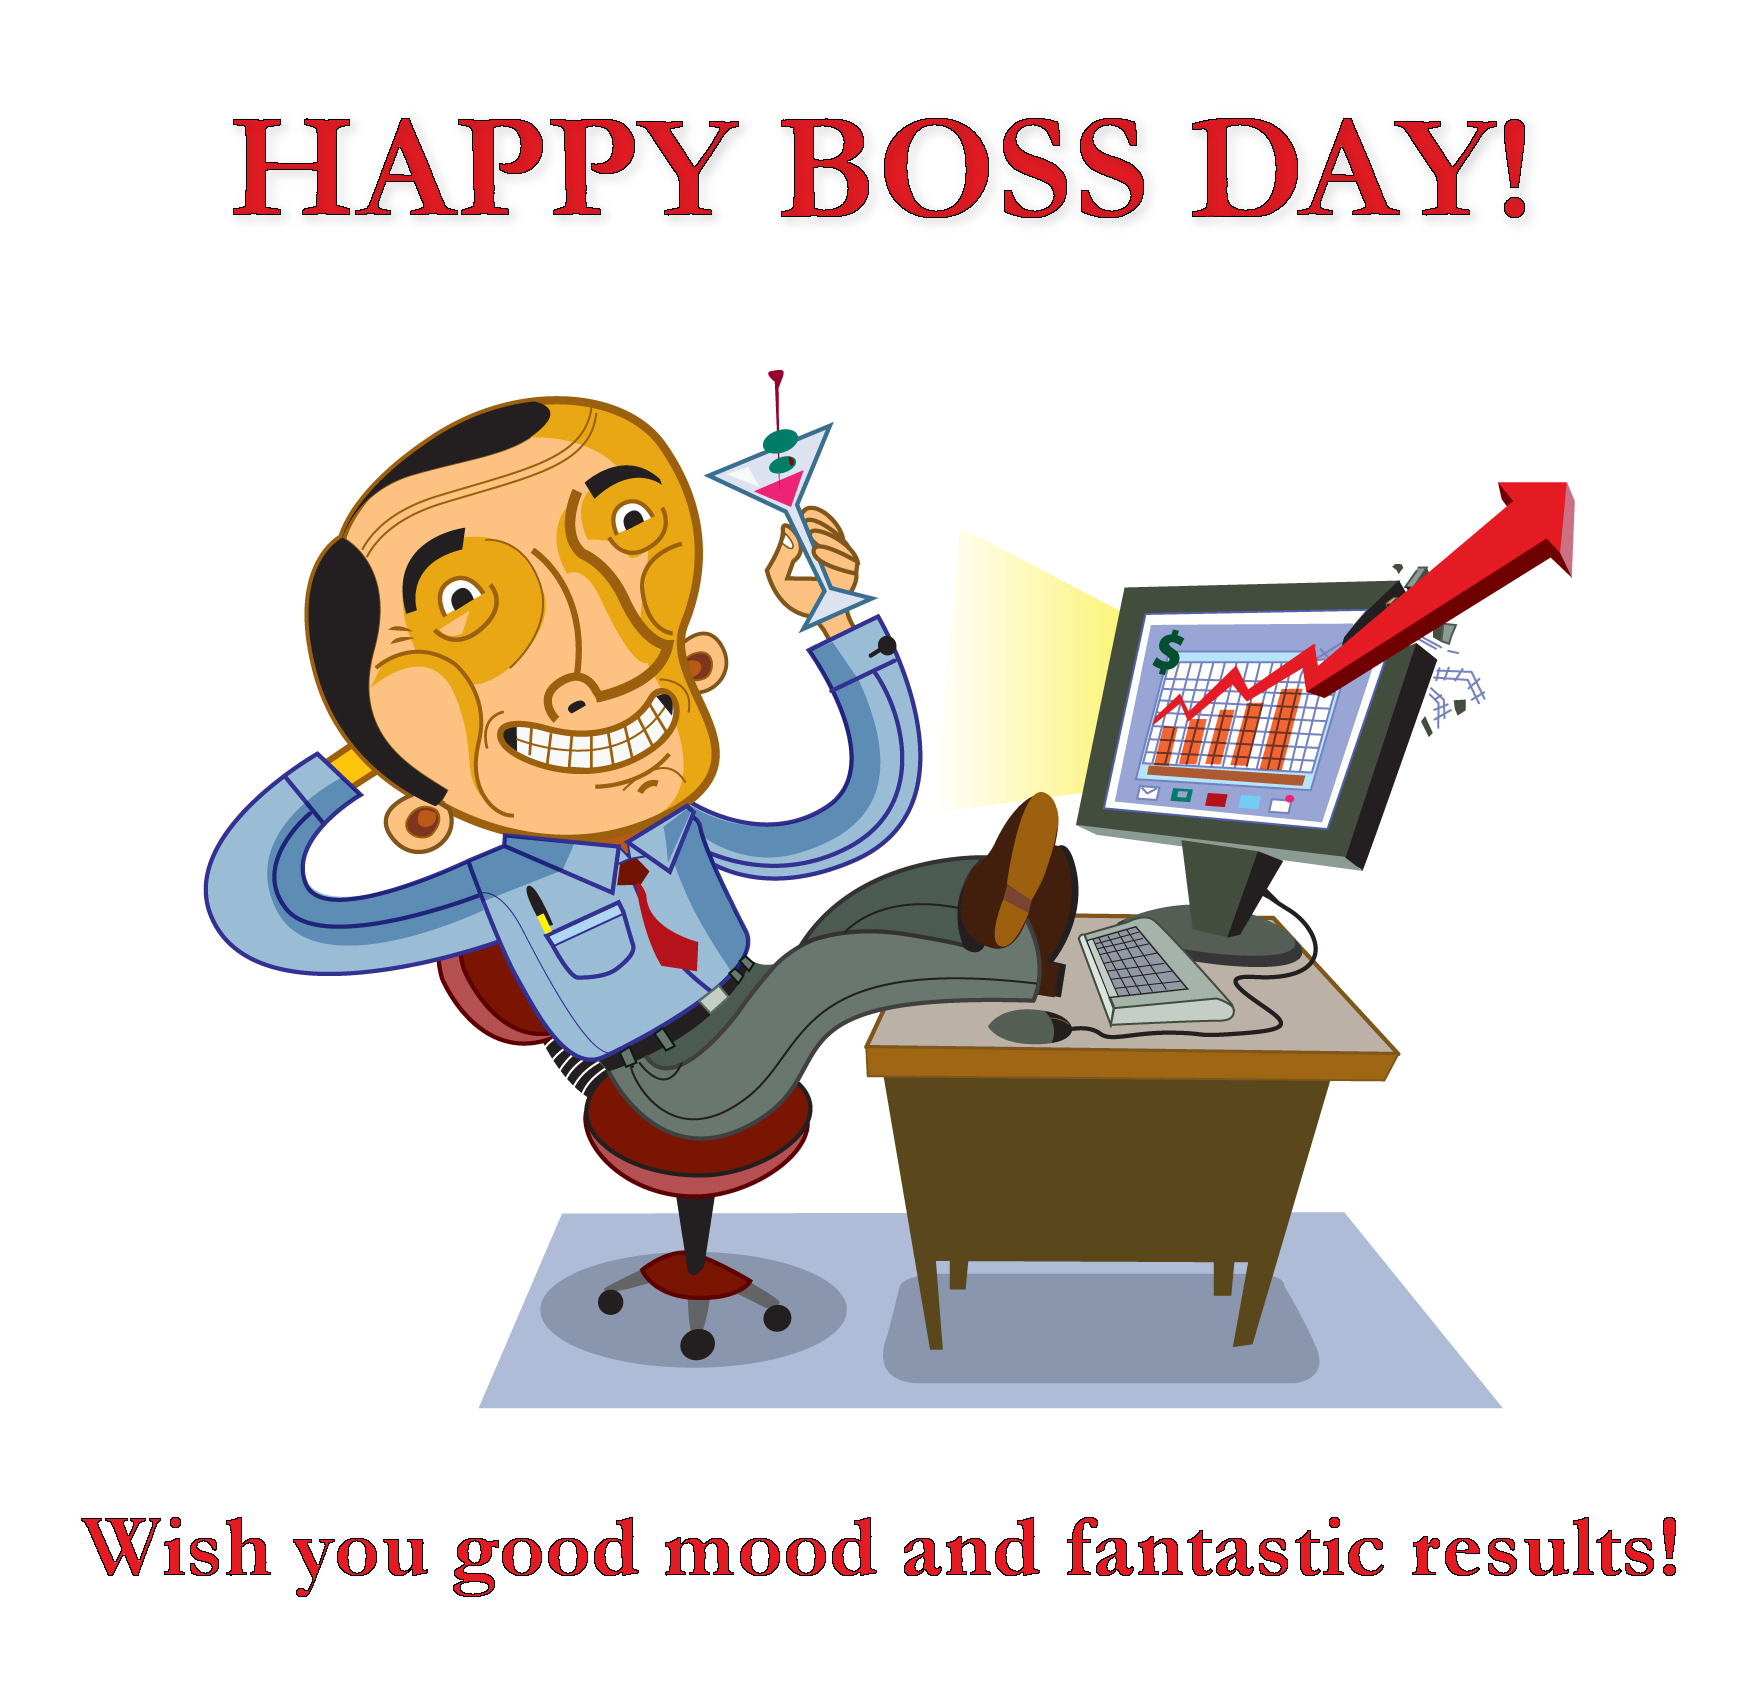 Boss Day Greetings cartoon